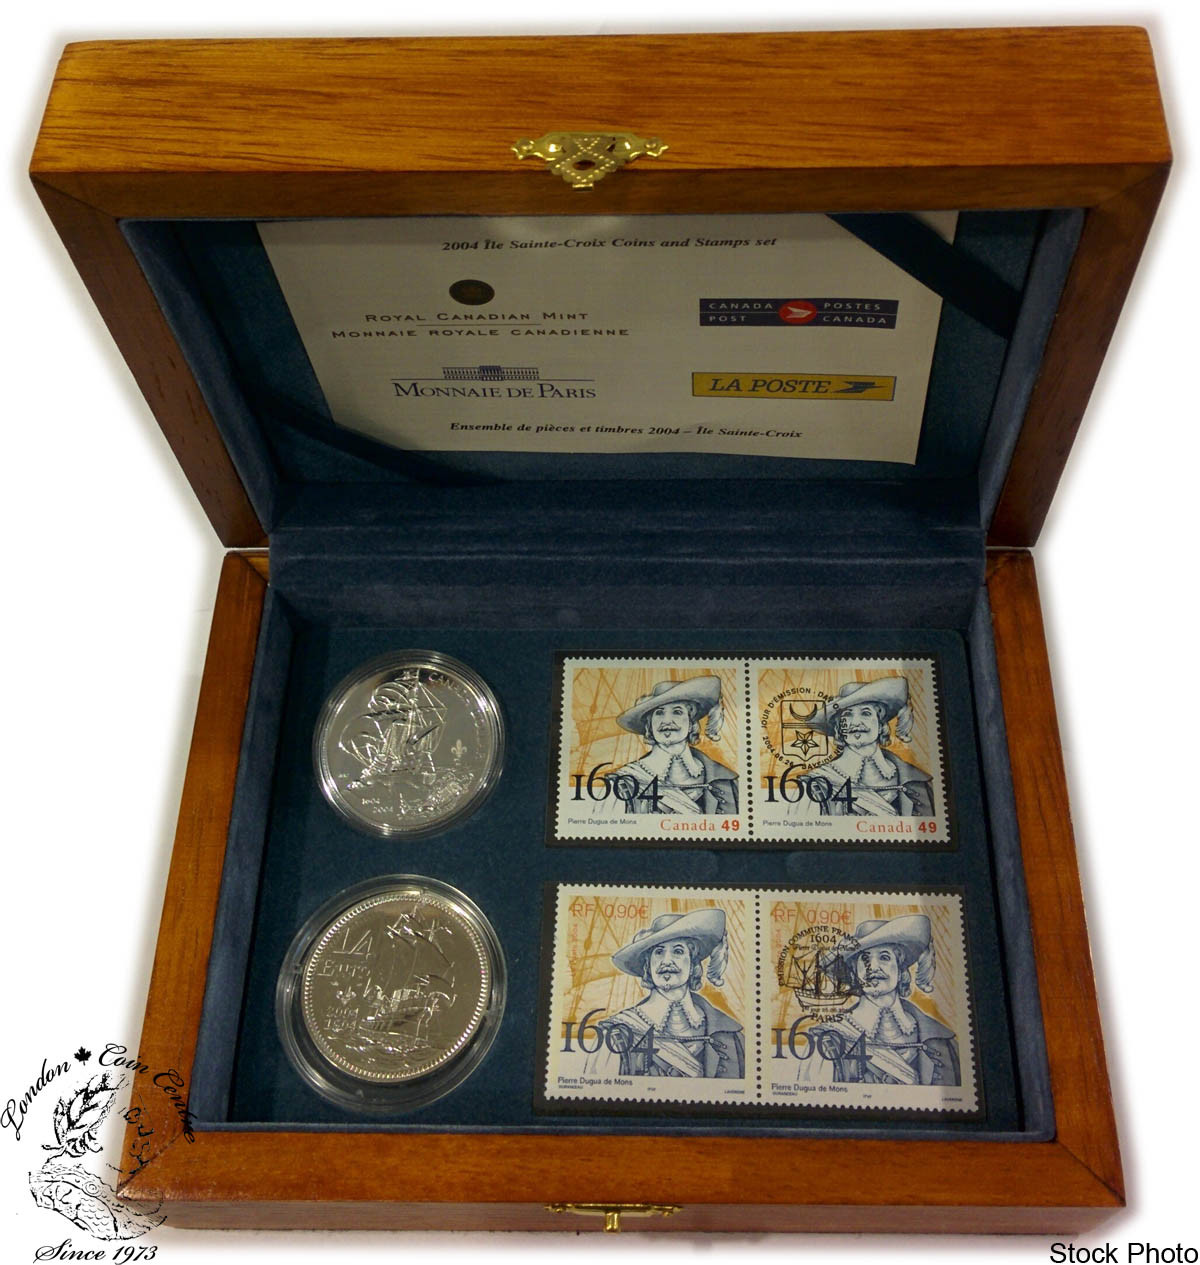 Canada 2004 400th Anniversary Of The First French